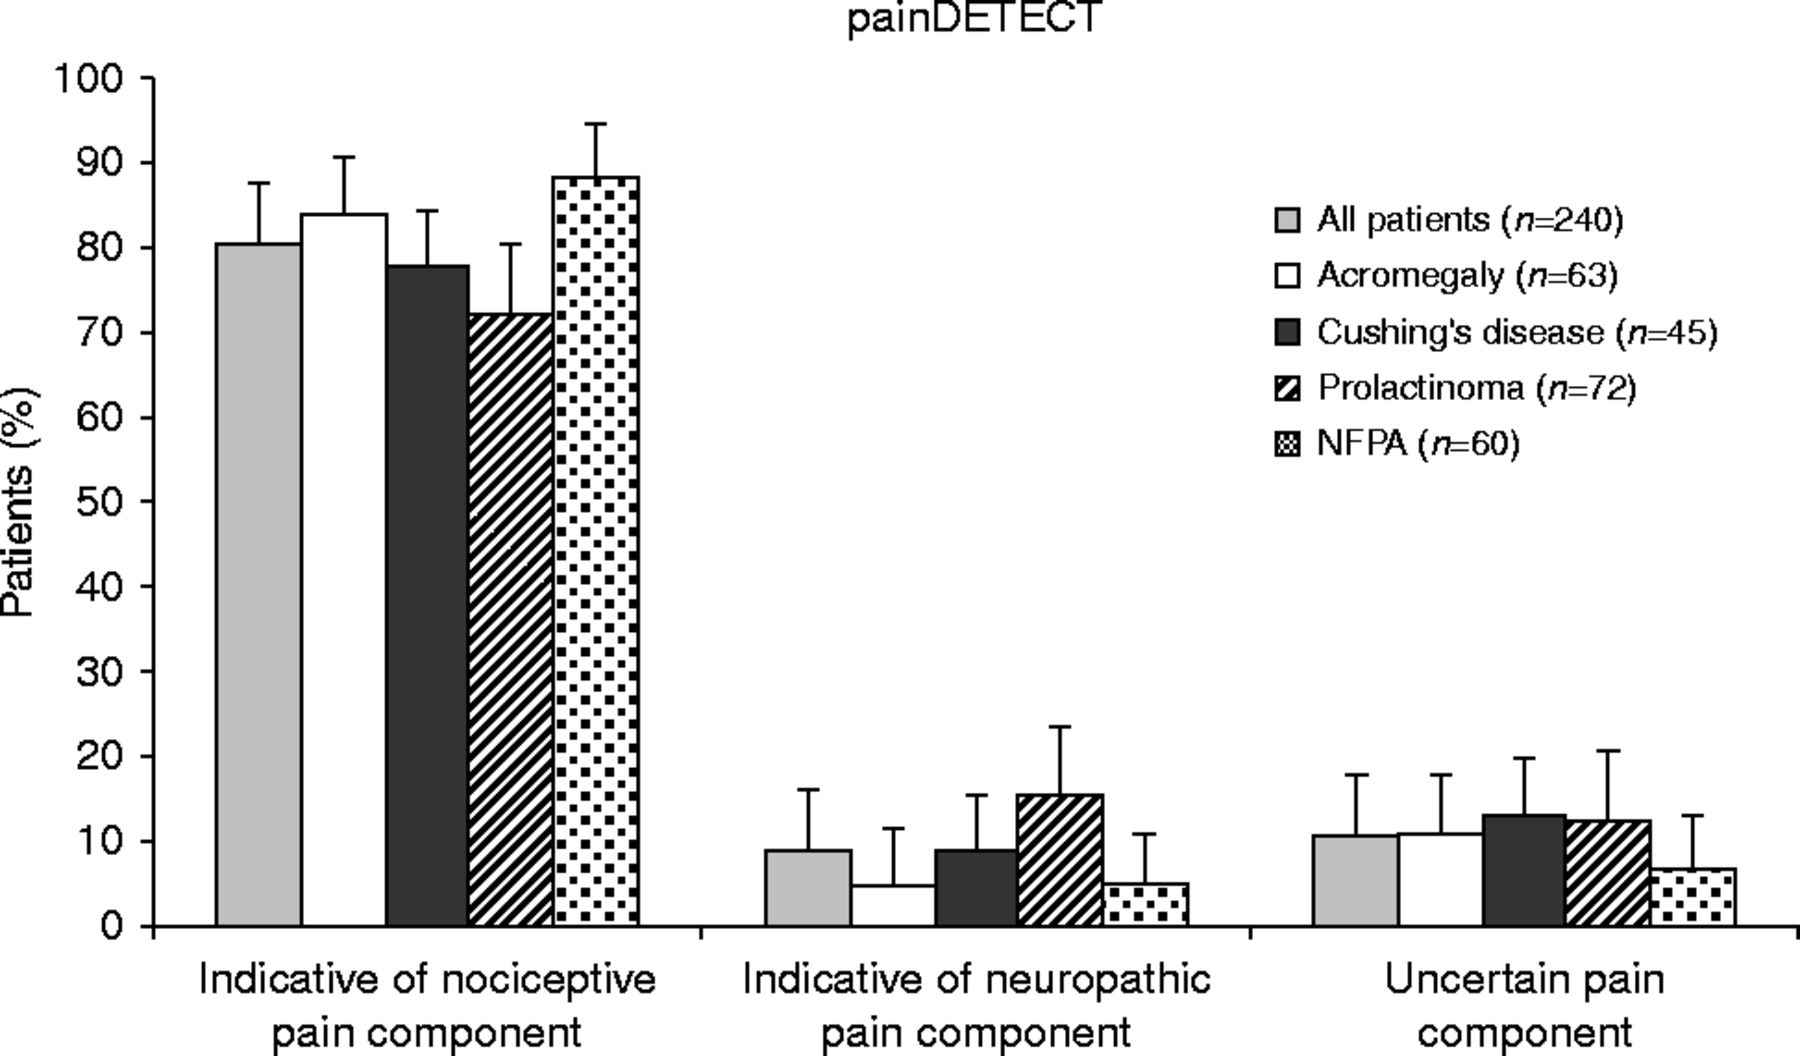 Clinical characteristics of pain in patients with pituitary adenomas